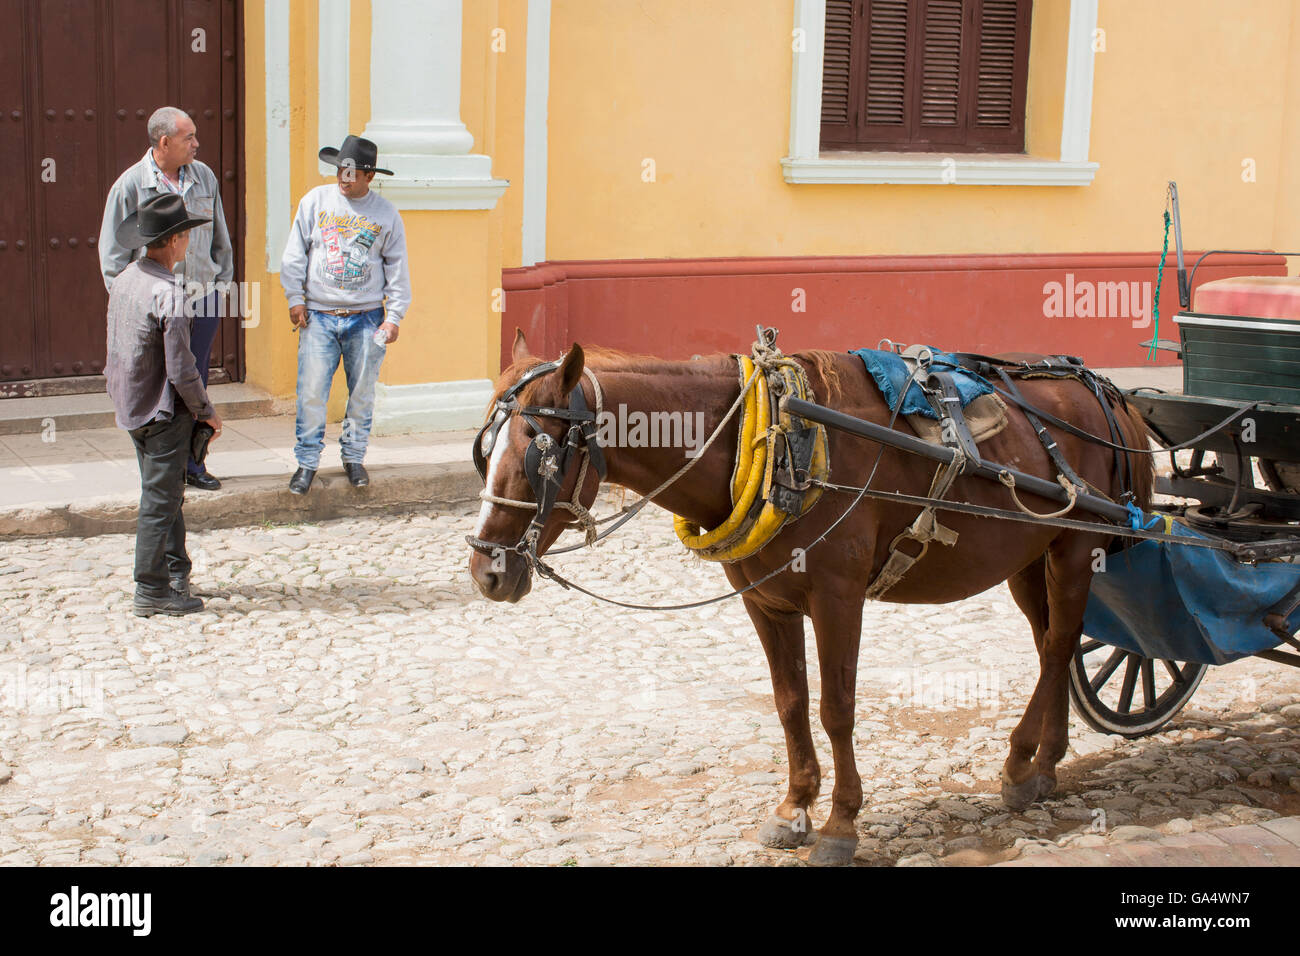 Horse-drawn cart, and three men talking outside the Museum National de la Lucha Contra Bandidos, Trinidad, Cuba - Stock Image